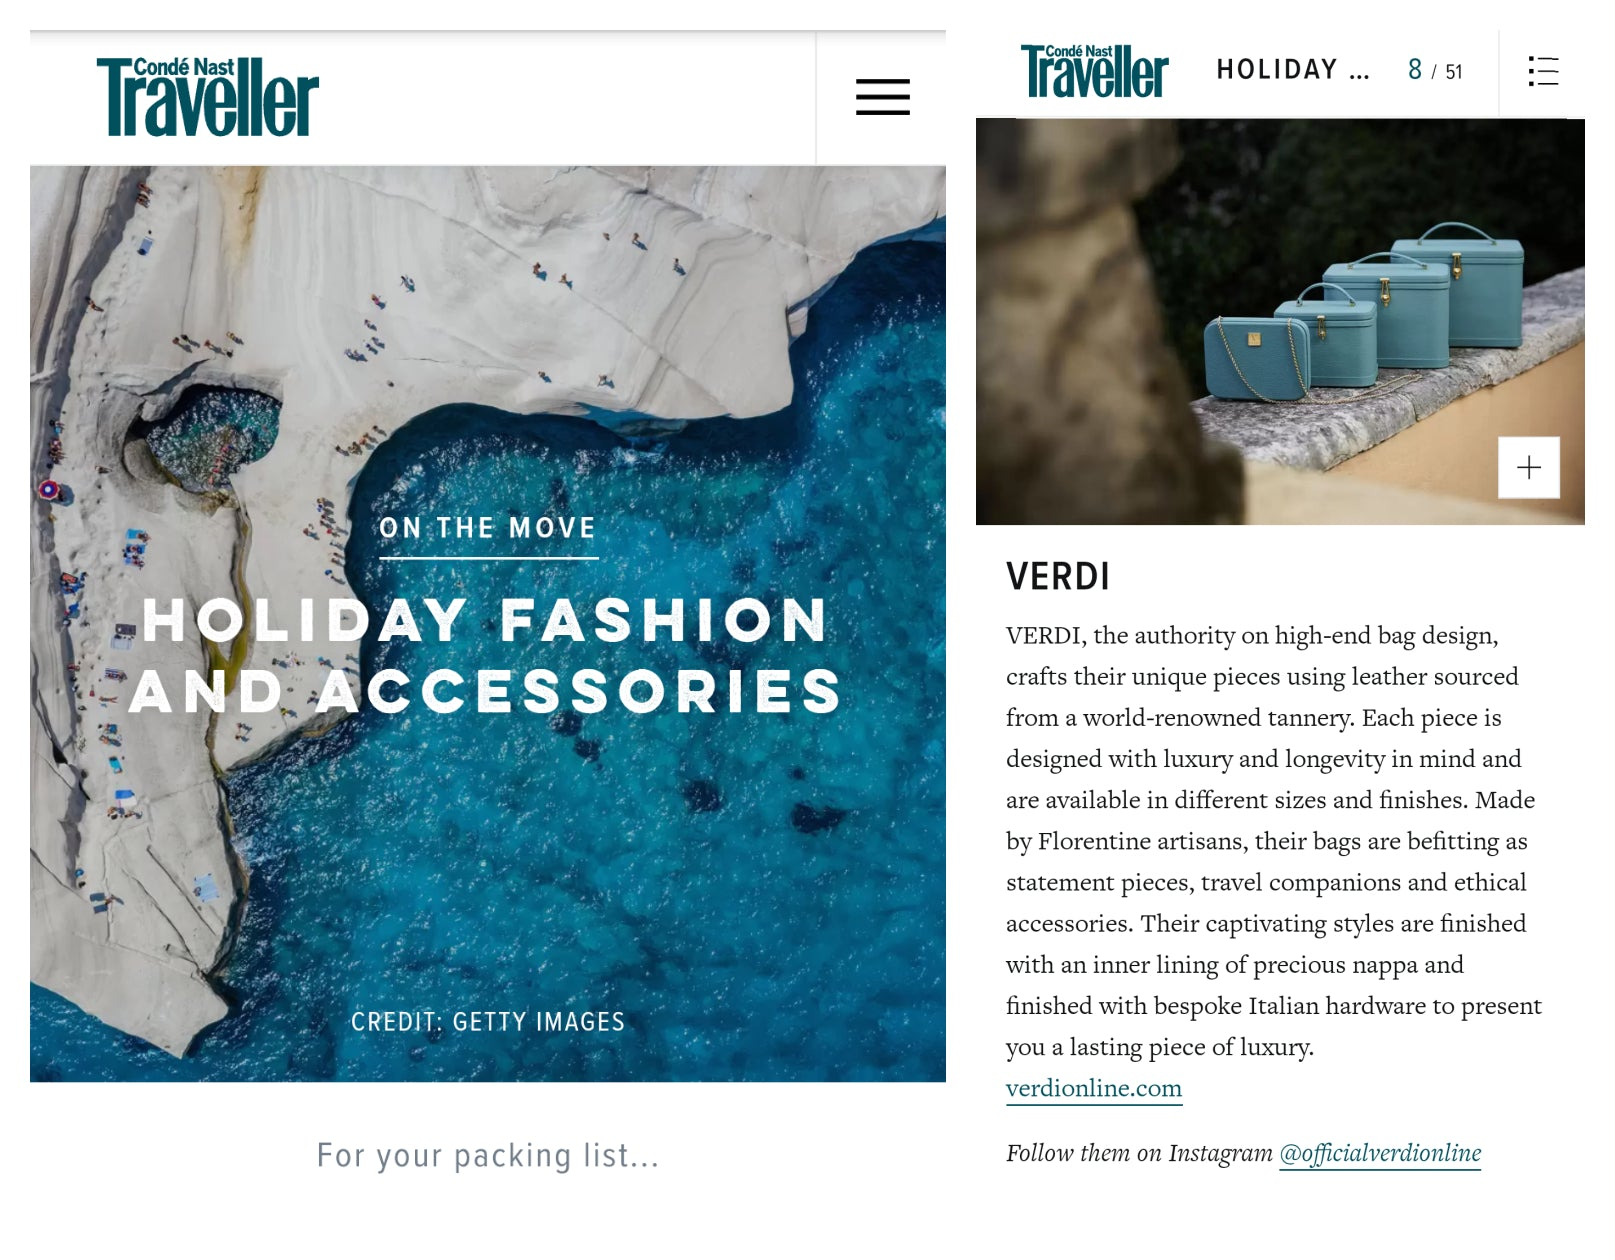 Atelier Verdi blue vanity cases and clutches in Conde Nast Traveller - On The Move